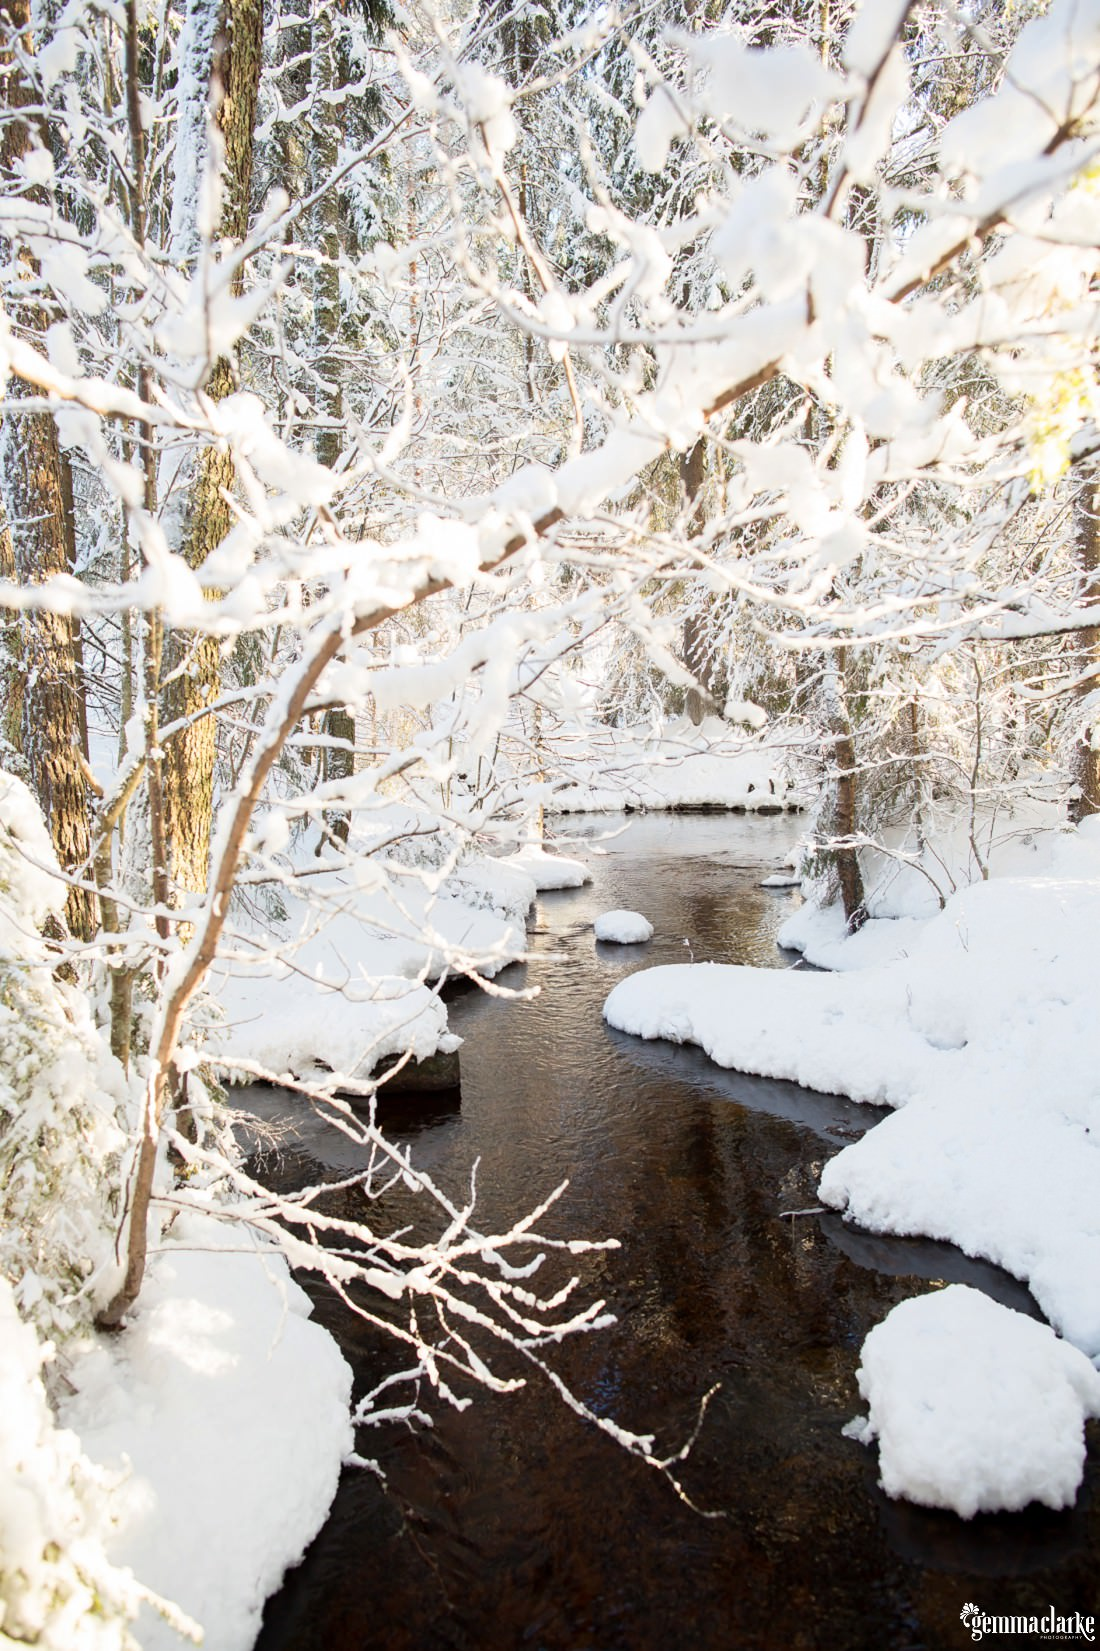 A small river running through a snowy forest